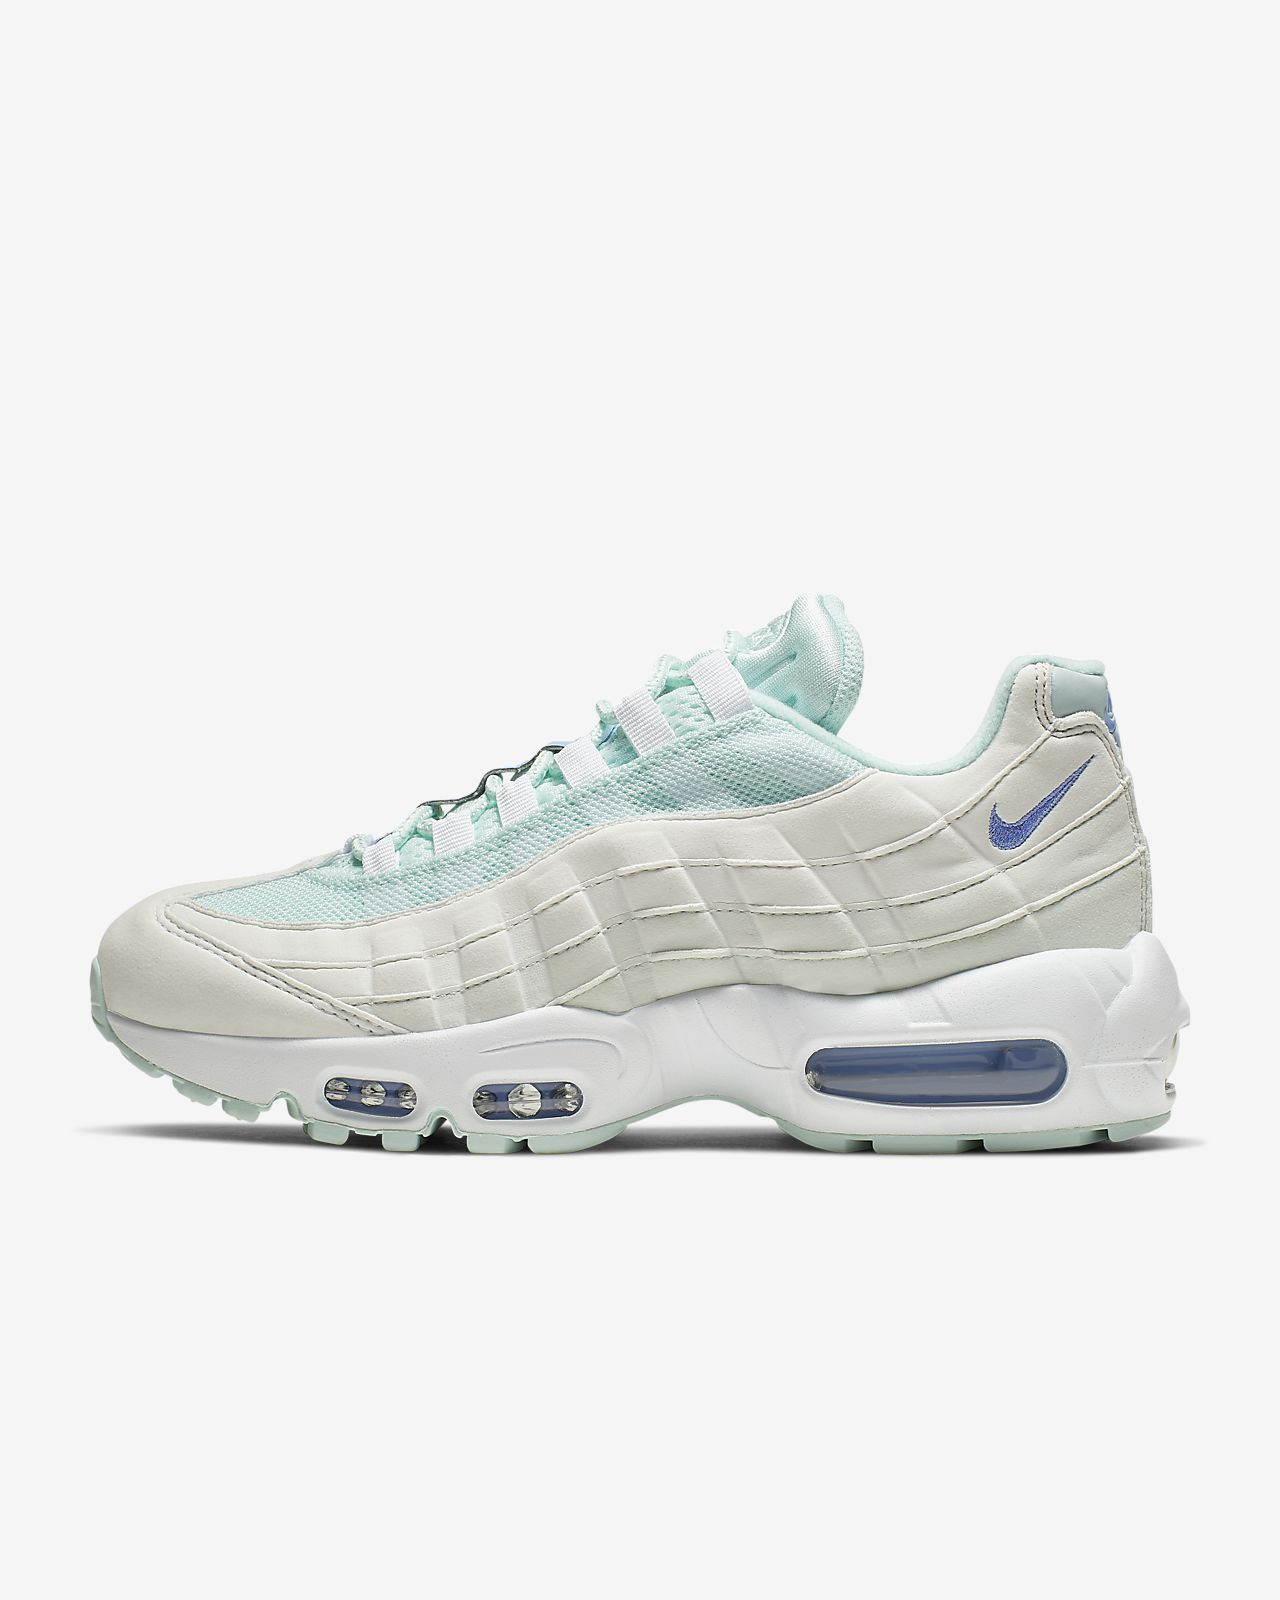 897fbe0809 Nike Air Max 95 Women's Shoe. Nike.com